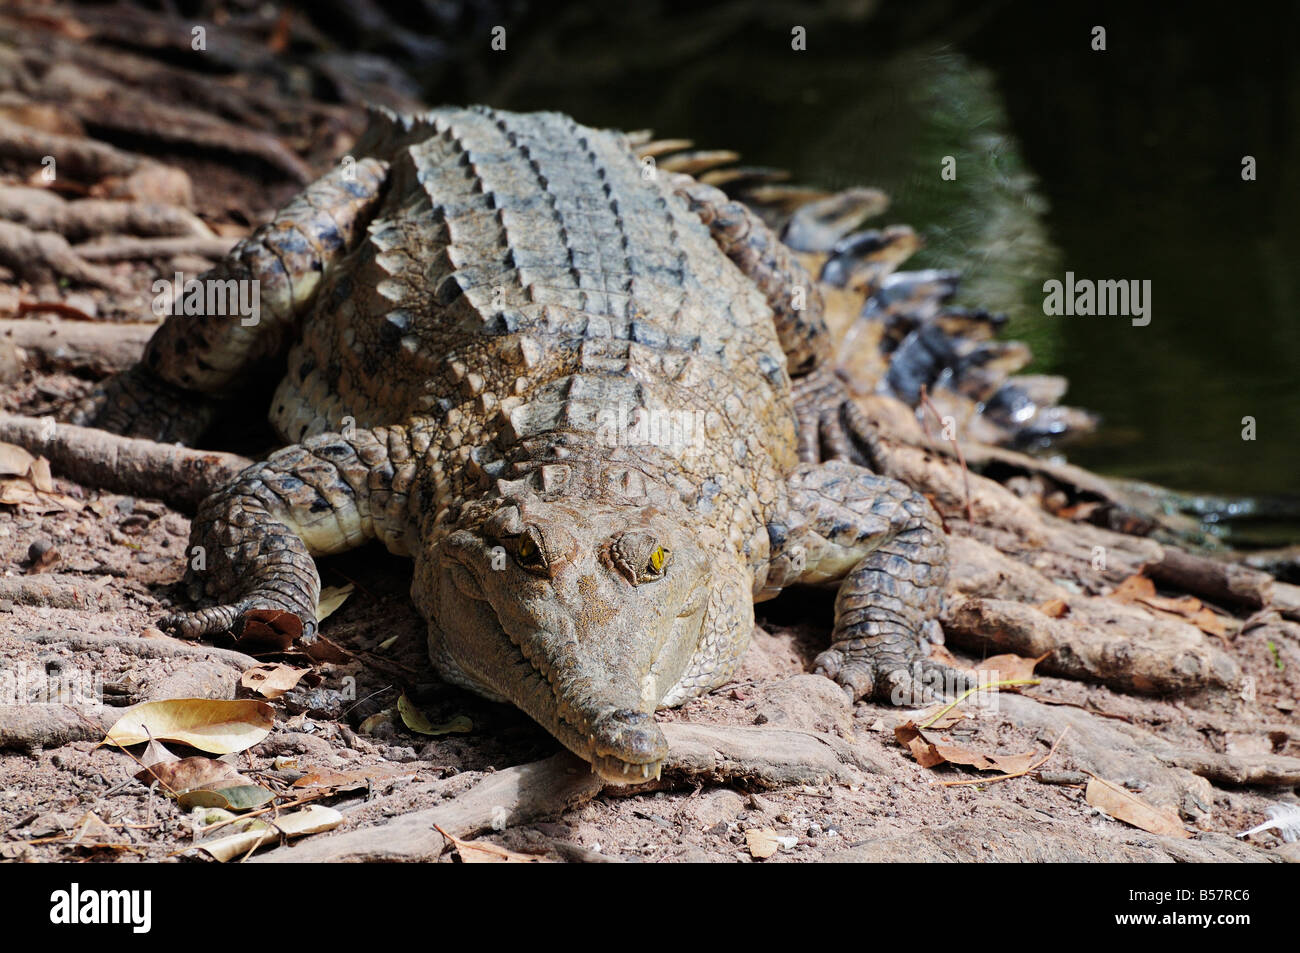 Saltwater crocodile, Northern Territory, Australia, Pacific - Stock Image